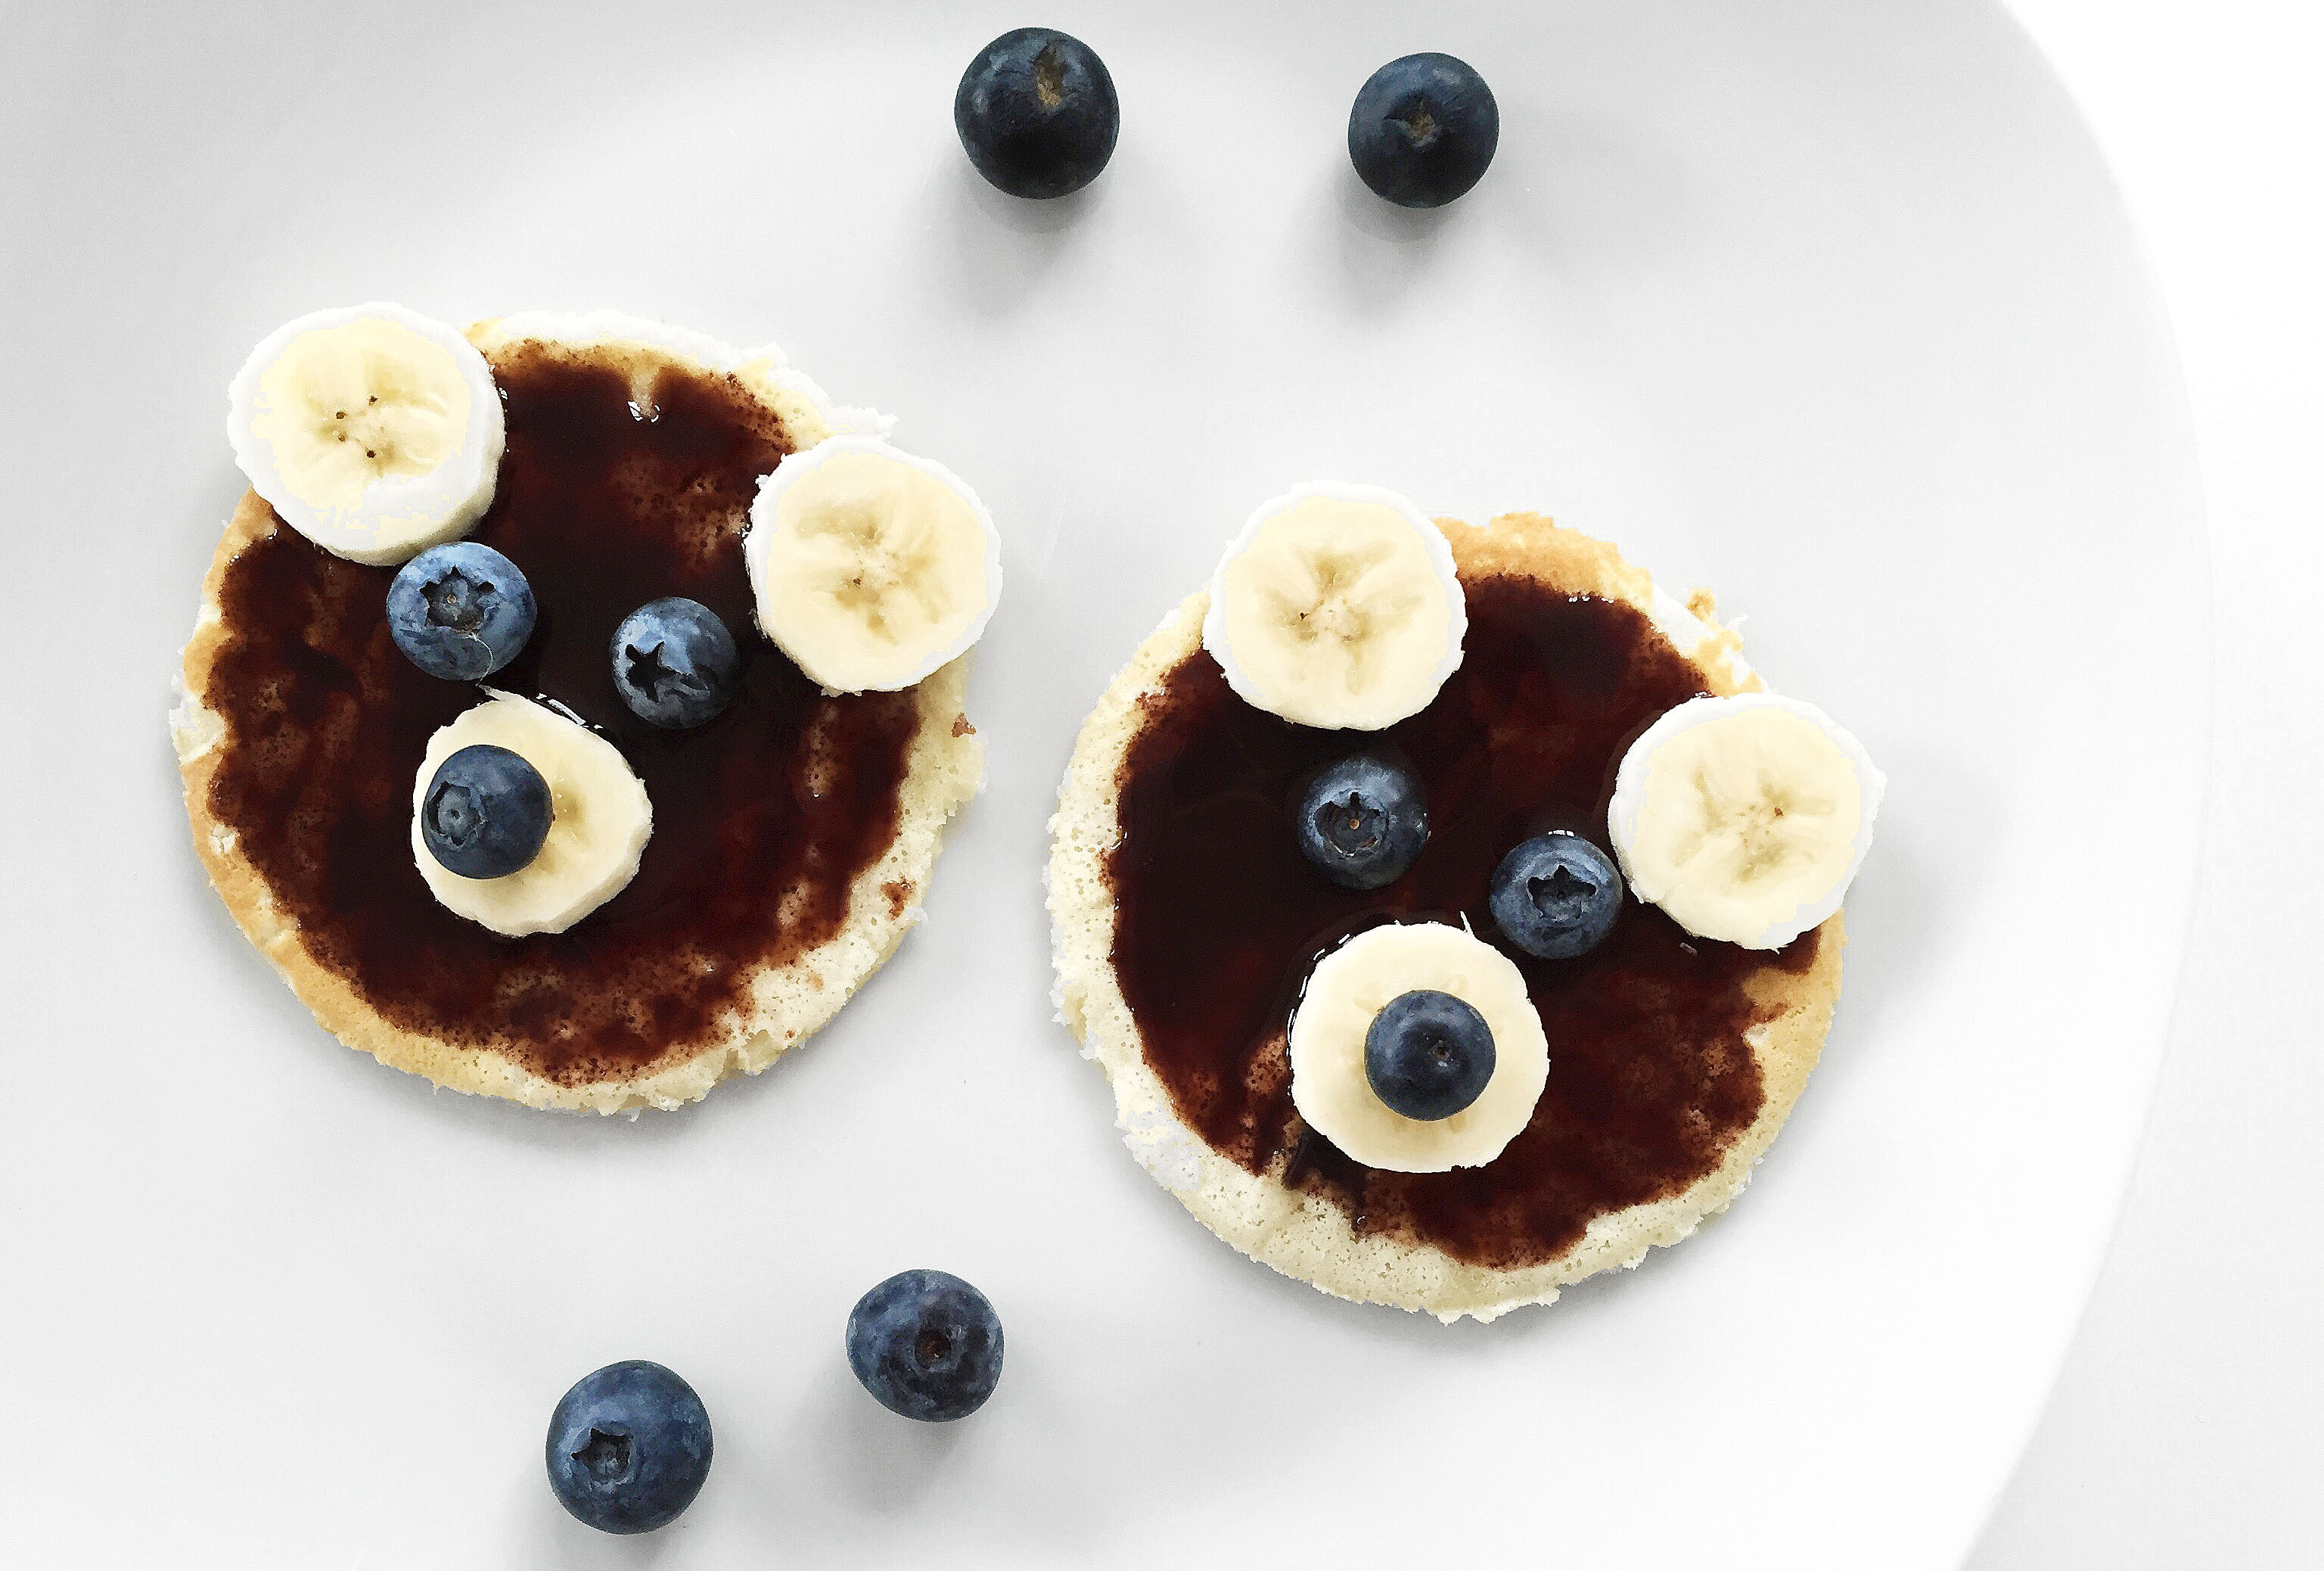 bea-la-panthere-fitness-blogger-lifestyle-blogger-fashion-blogger-food-blogger-blog-blogger-vegan-hamburg-muenchen-munich-germany-deutschland-vegane-bären-pancakes-1